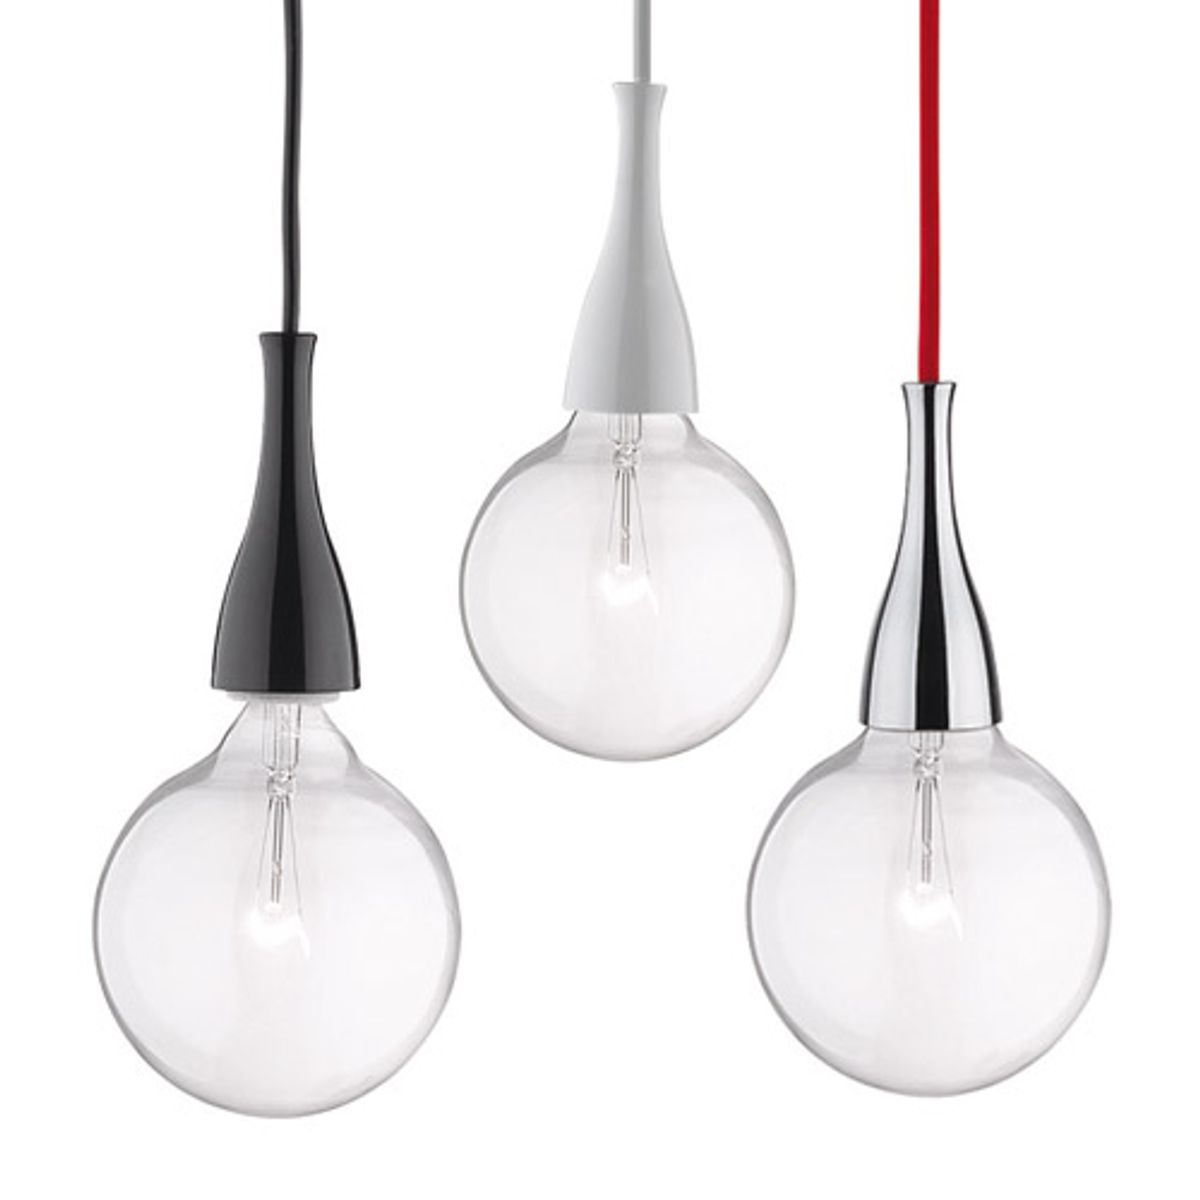 Suspension Simple Ikea Ampoule Suspension Top Lampes Ampoules Et Fils Lectriques